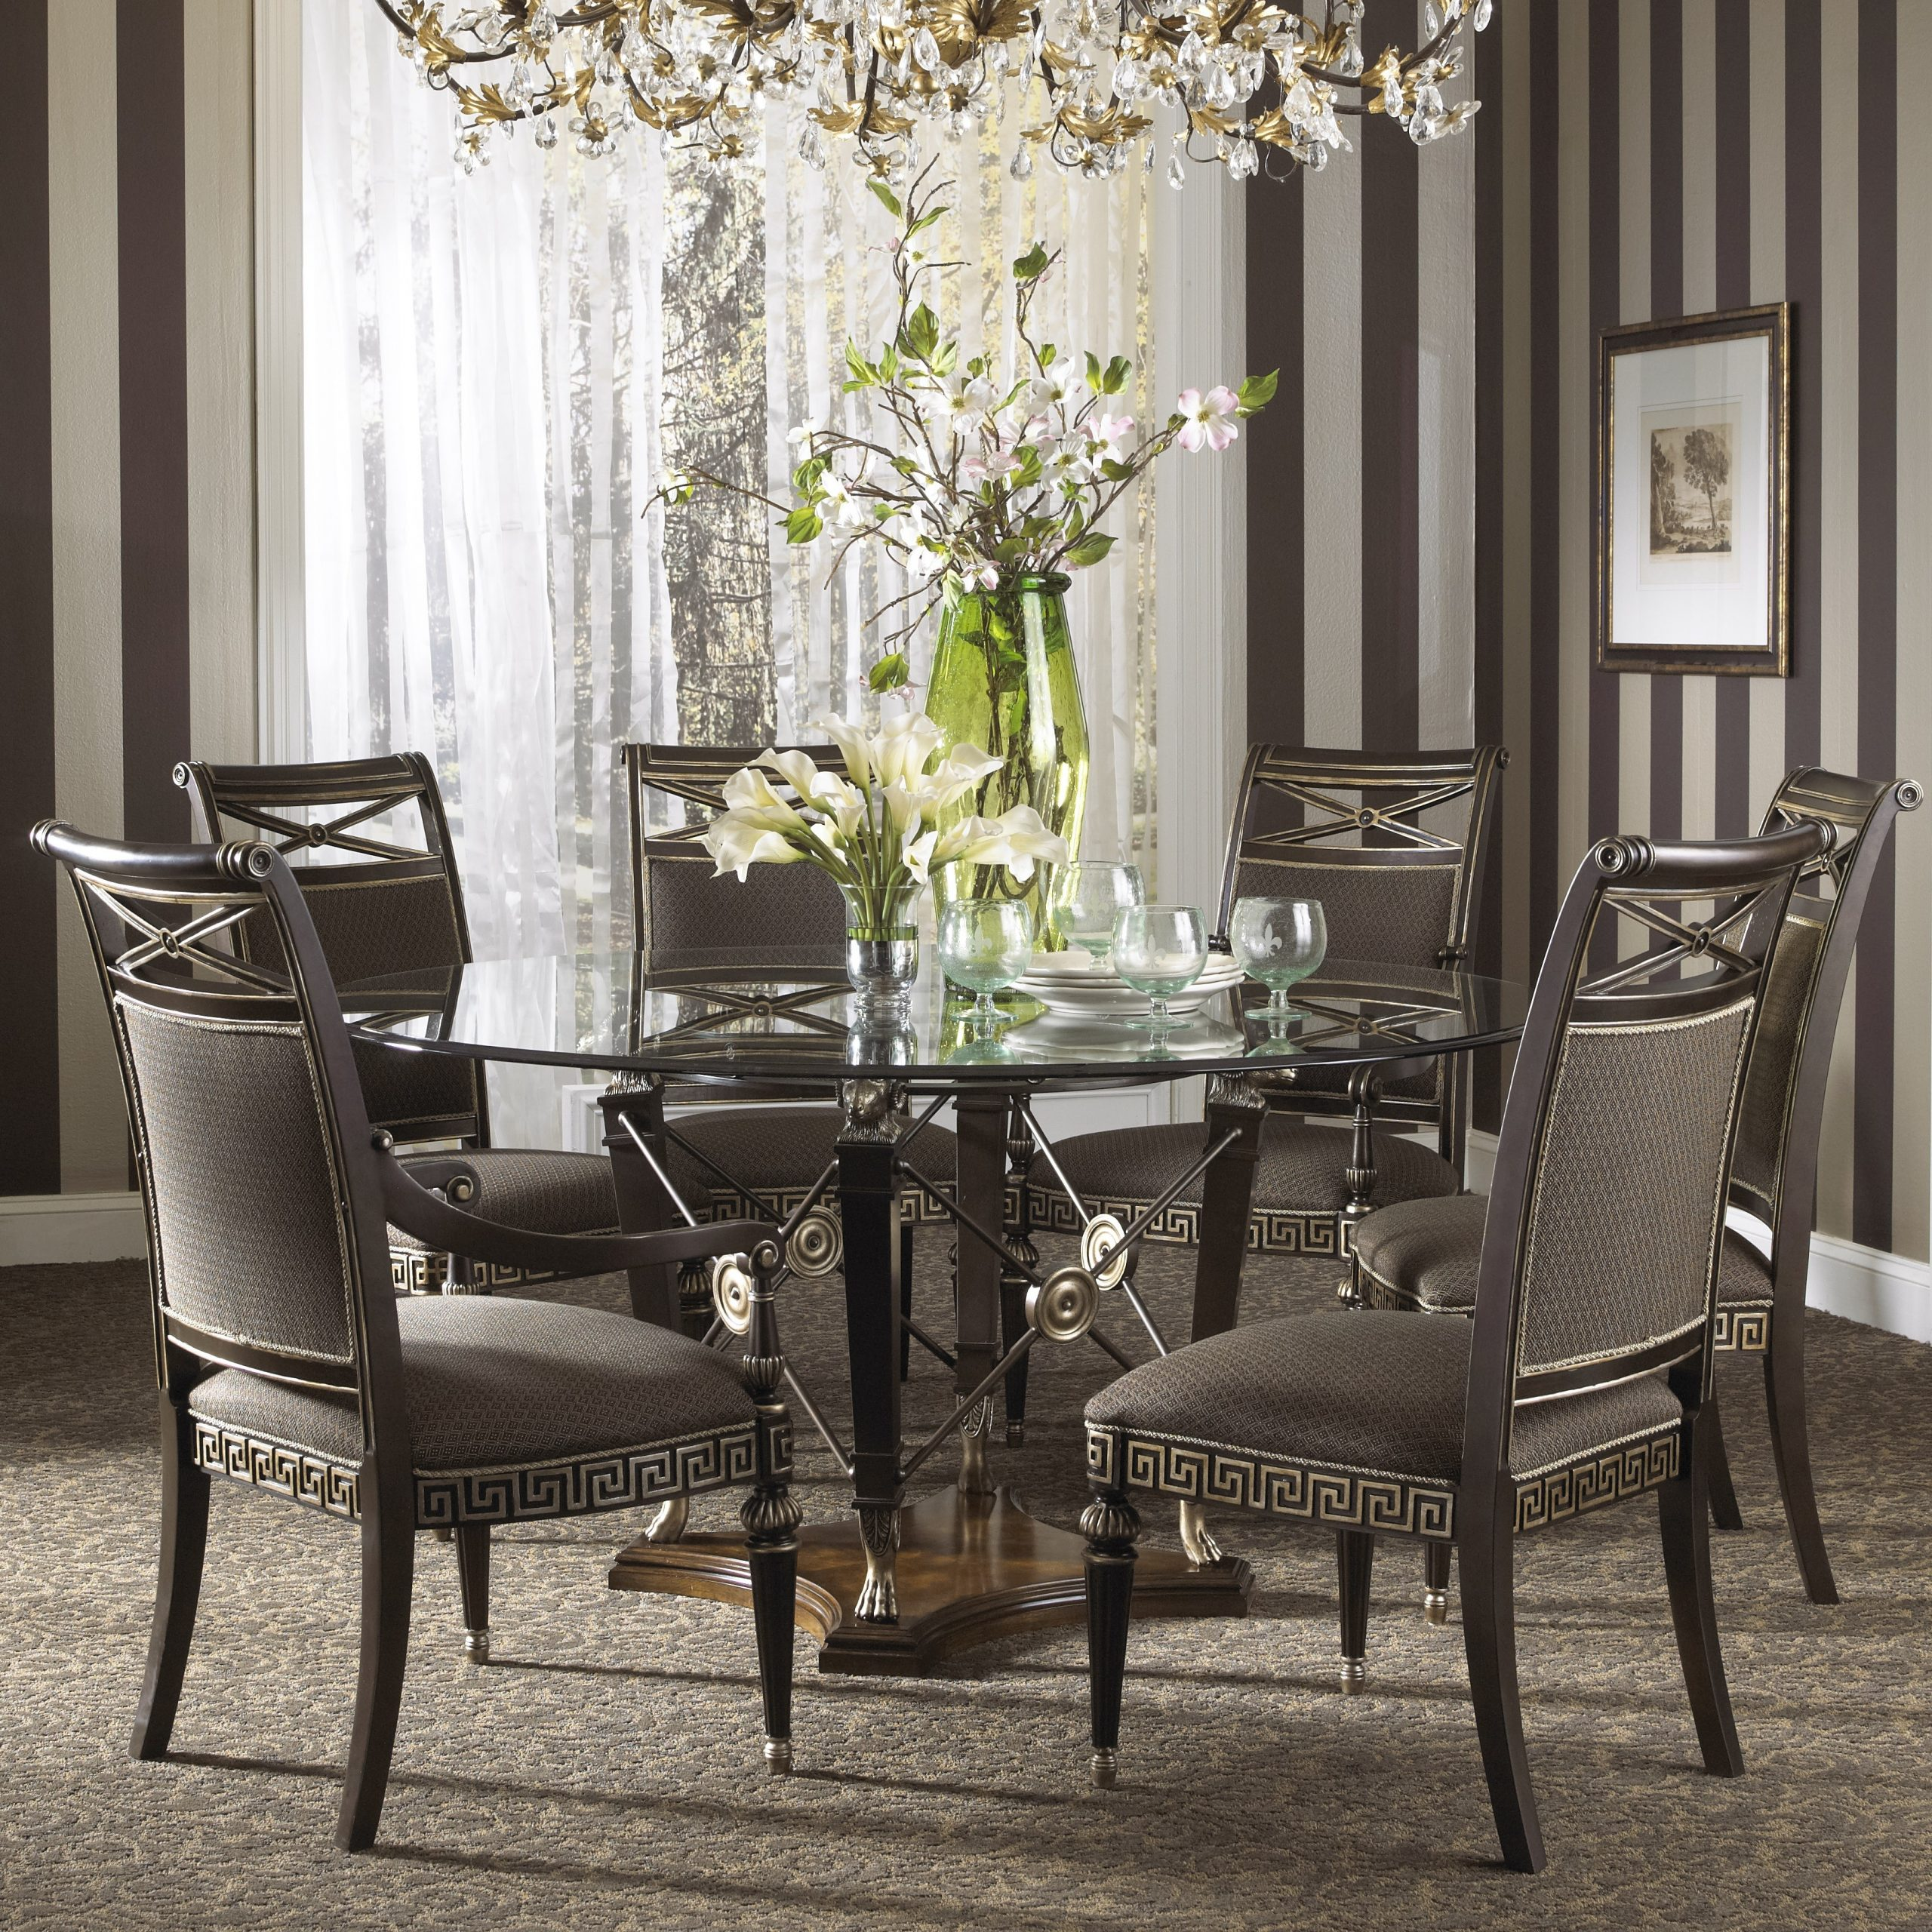 Widely Used Elegance Large Round Dining Tables Inside Elegant Large Round Glass Dining Table And Chair Clearance (View 4 of 25)